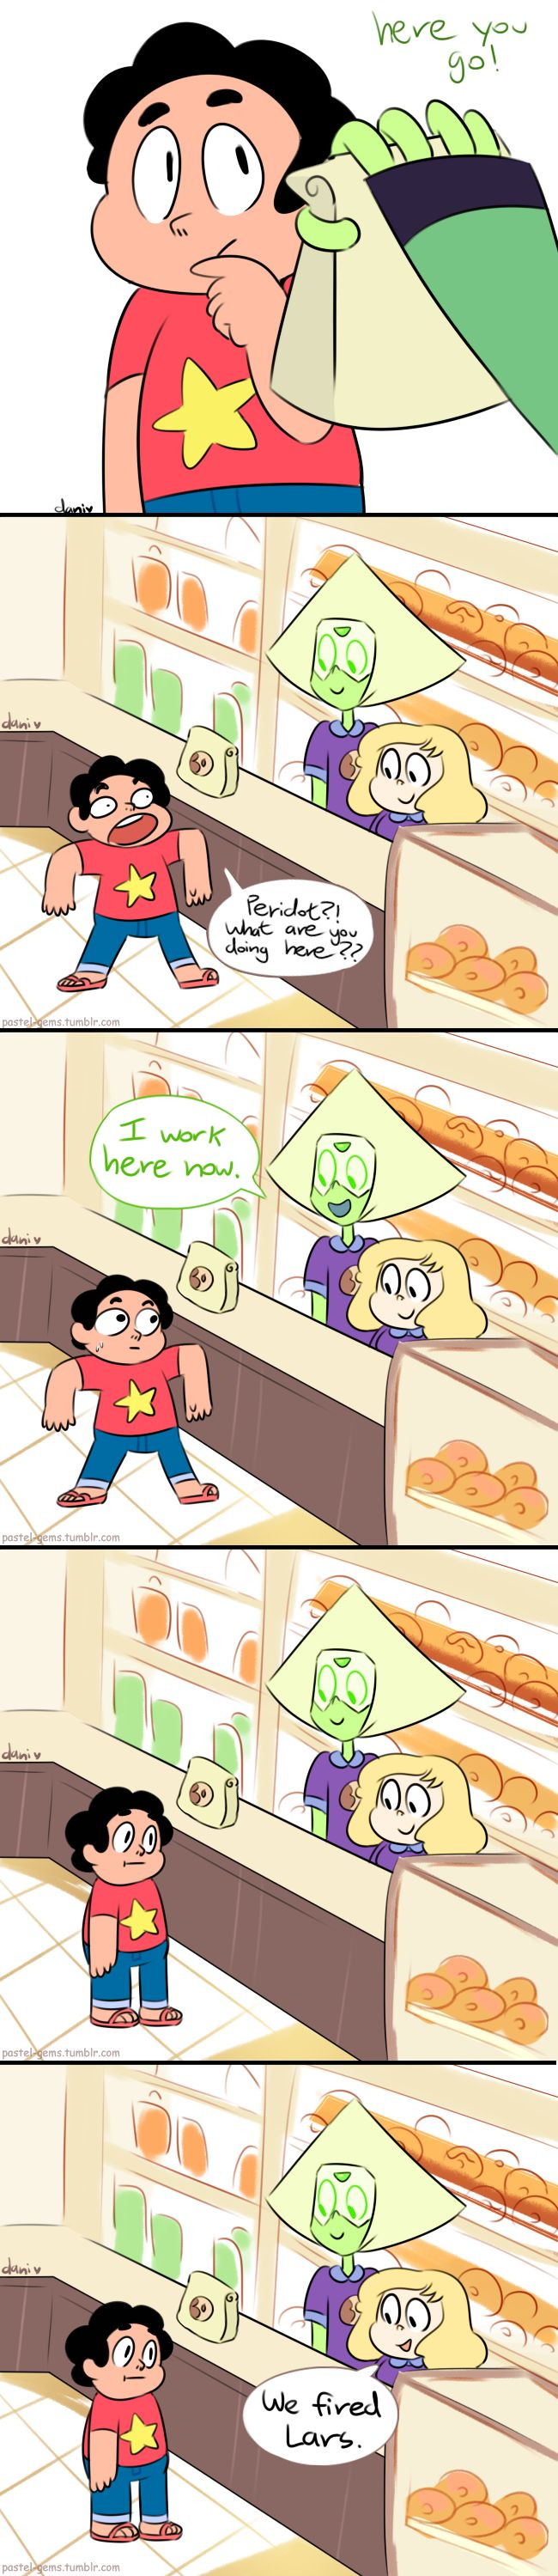 Peridot Gets A New Job by Milkii-Ways.deviantart.com on @DeviantArt